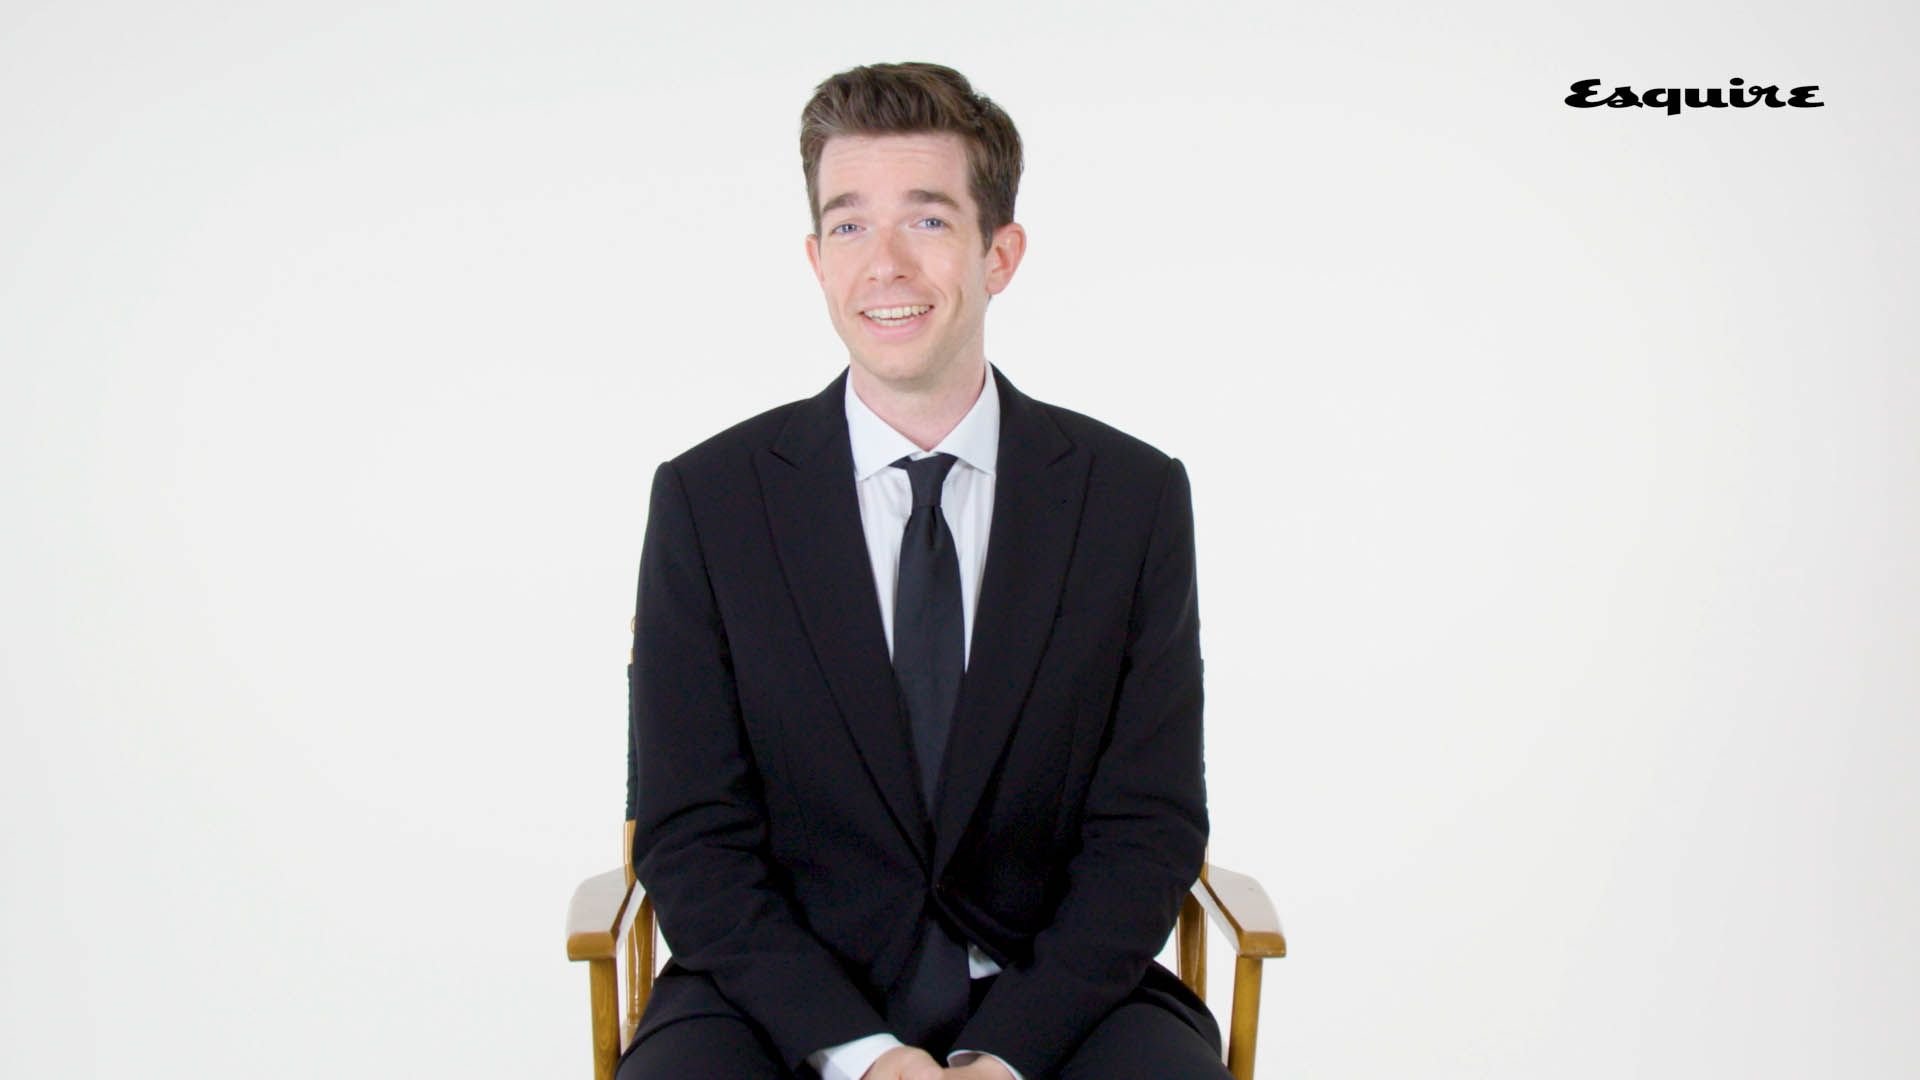 John Mulaney Says Adapting is Part of Becoming 'A Better Comedian'